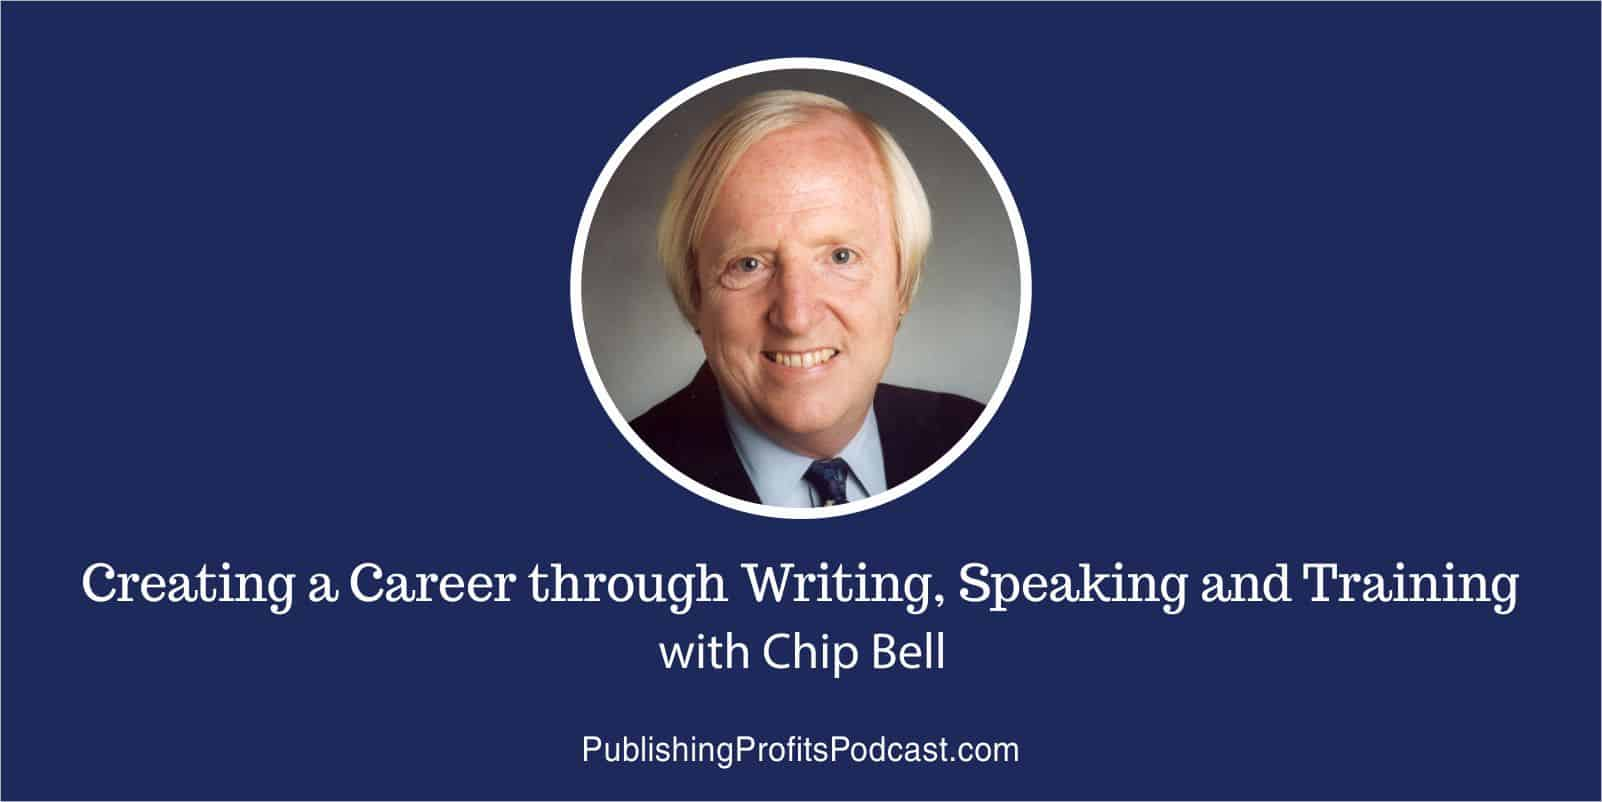 Creating a Career Chip Bell header